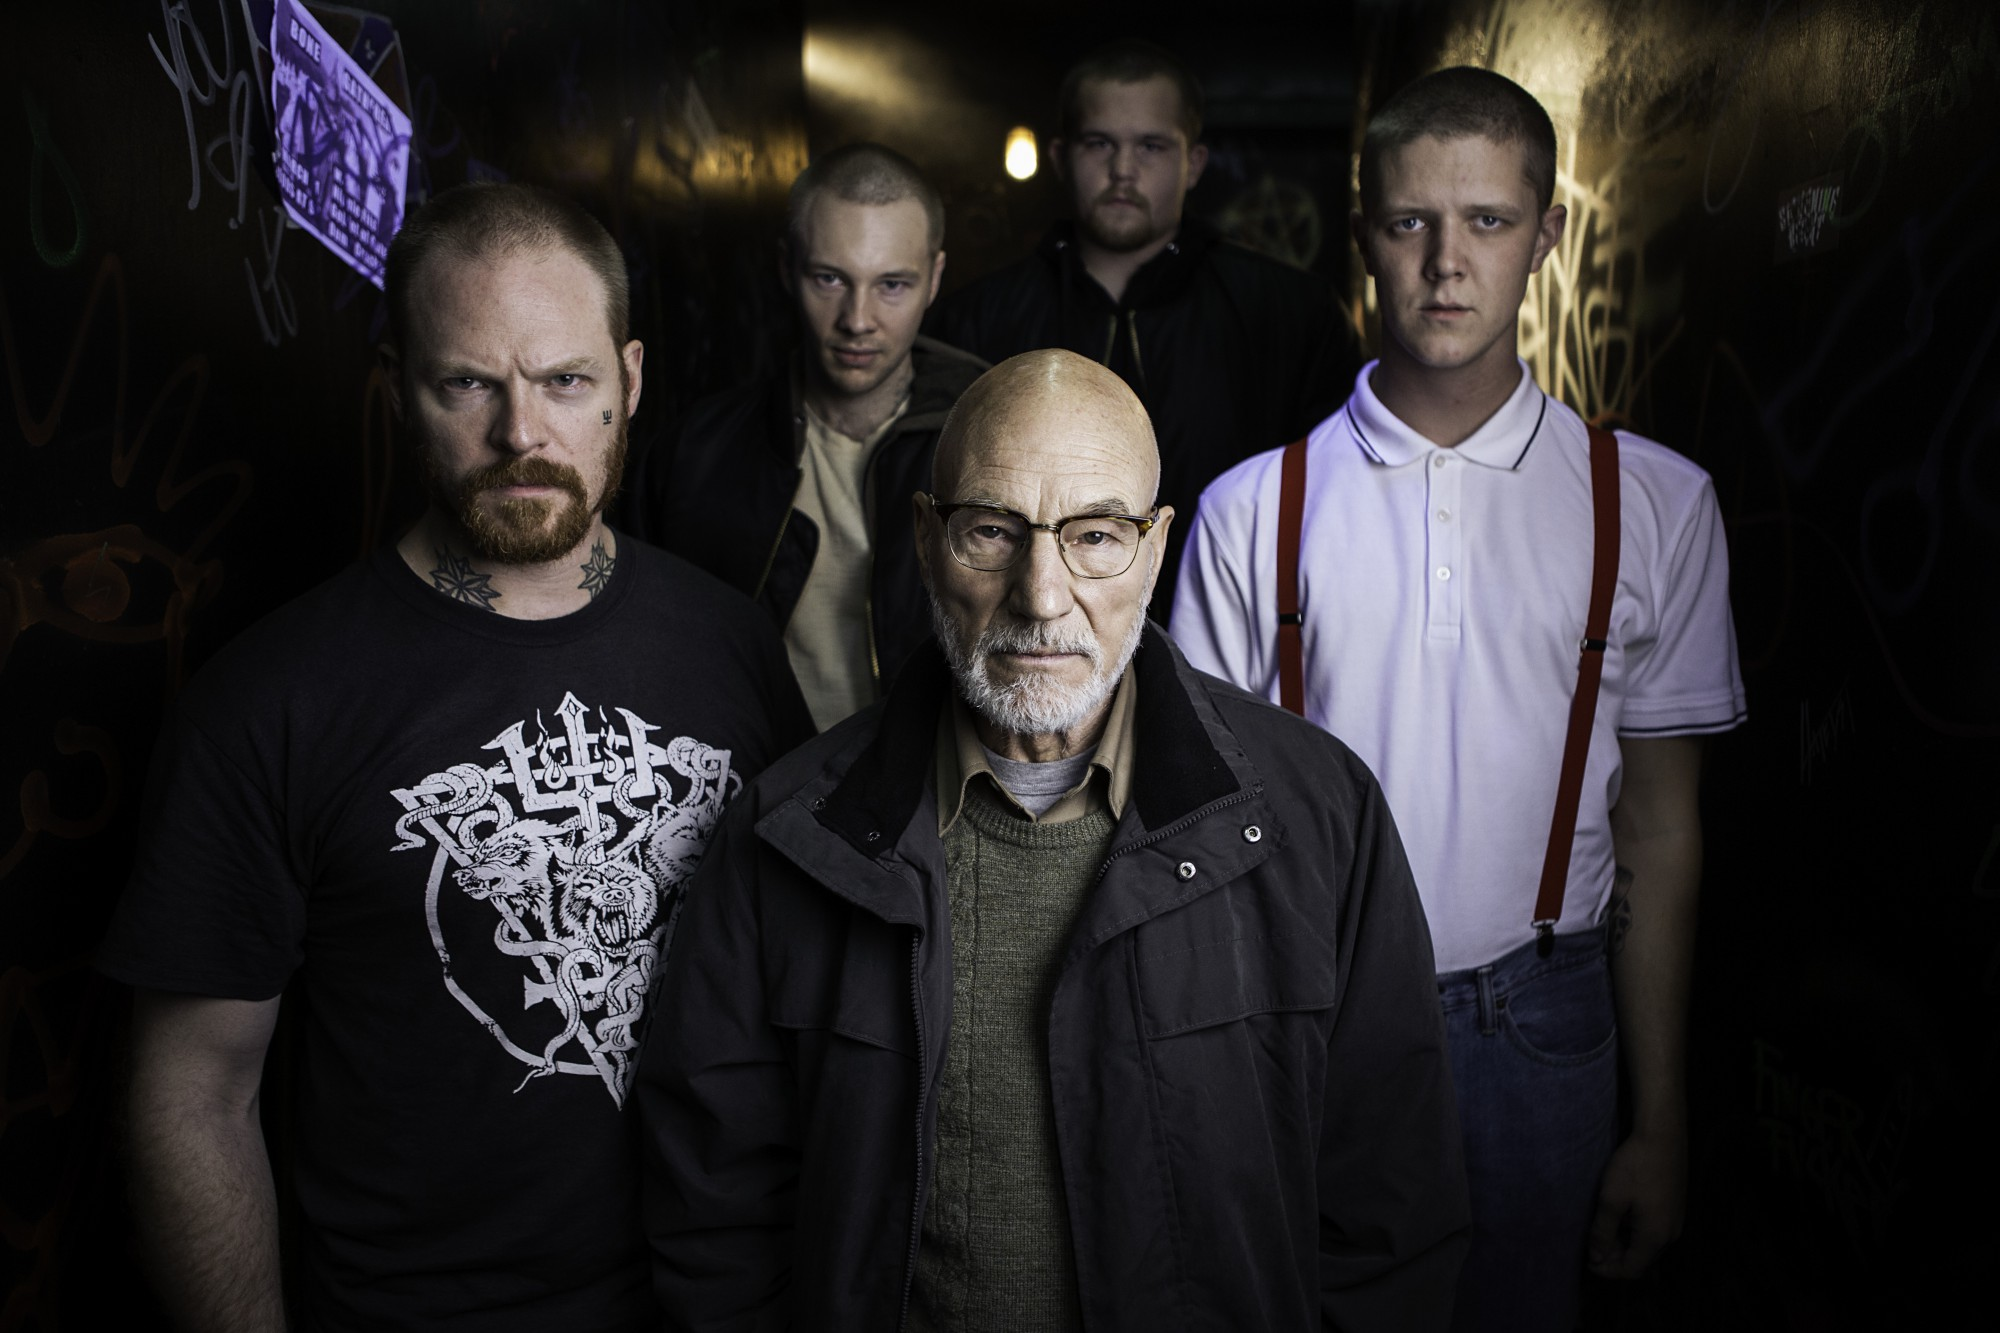 green room e1449525743469 Sundance Film Festival announces star studded premieres for 2016 lineup